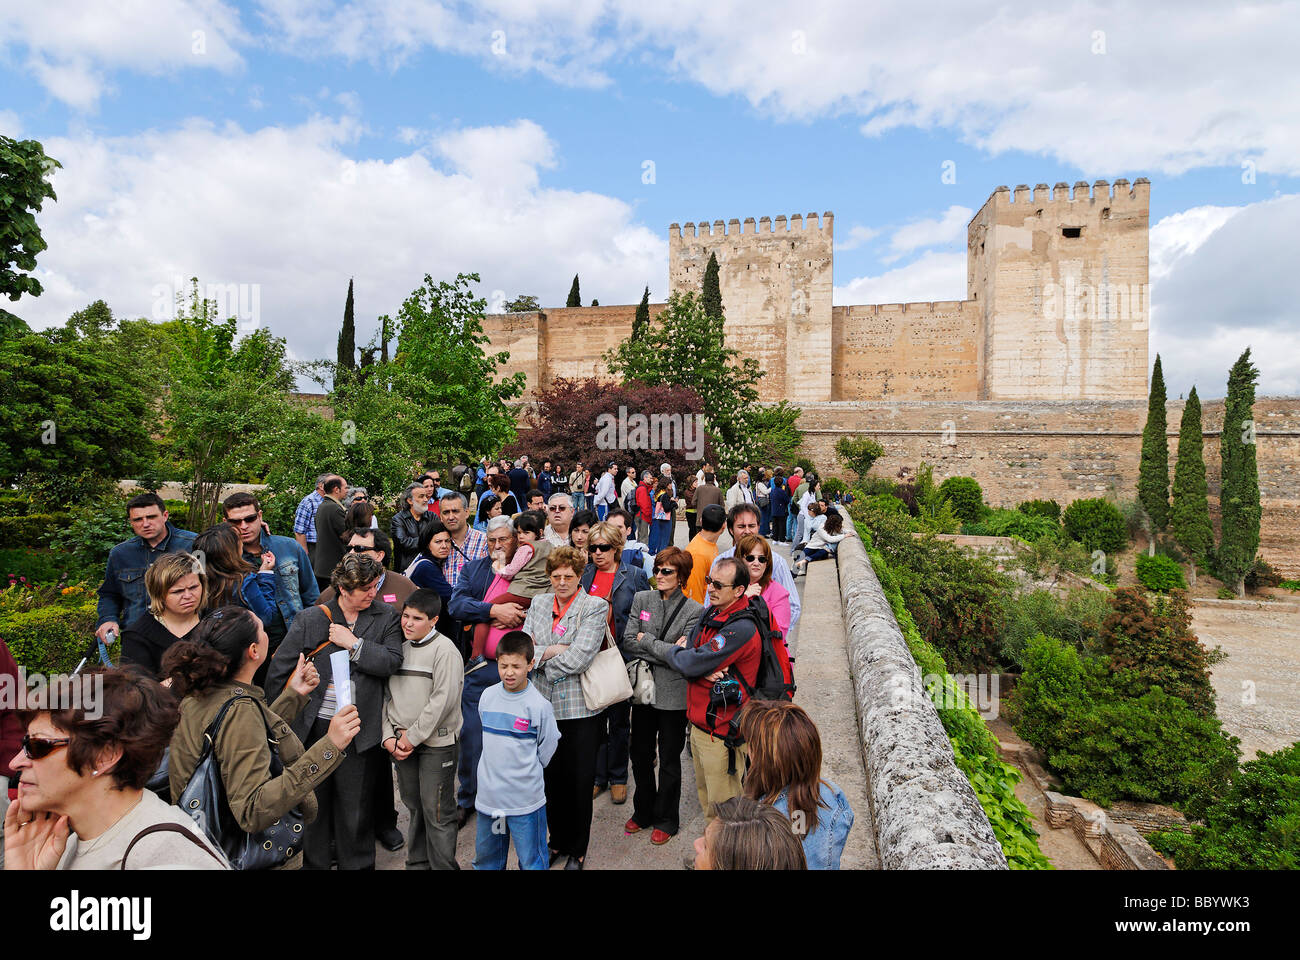 Tourists are waiting for the admission to the Moorish Prince's Palace in front of the palace of Emperor Charles - Stock Image